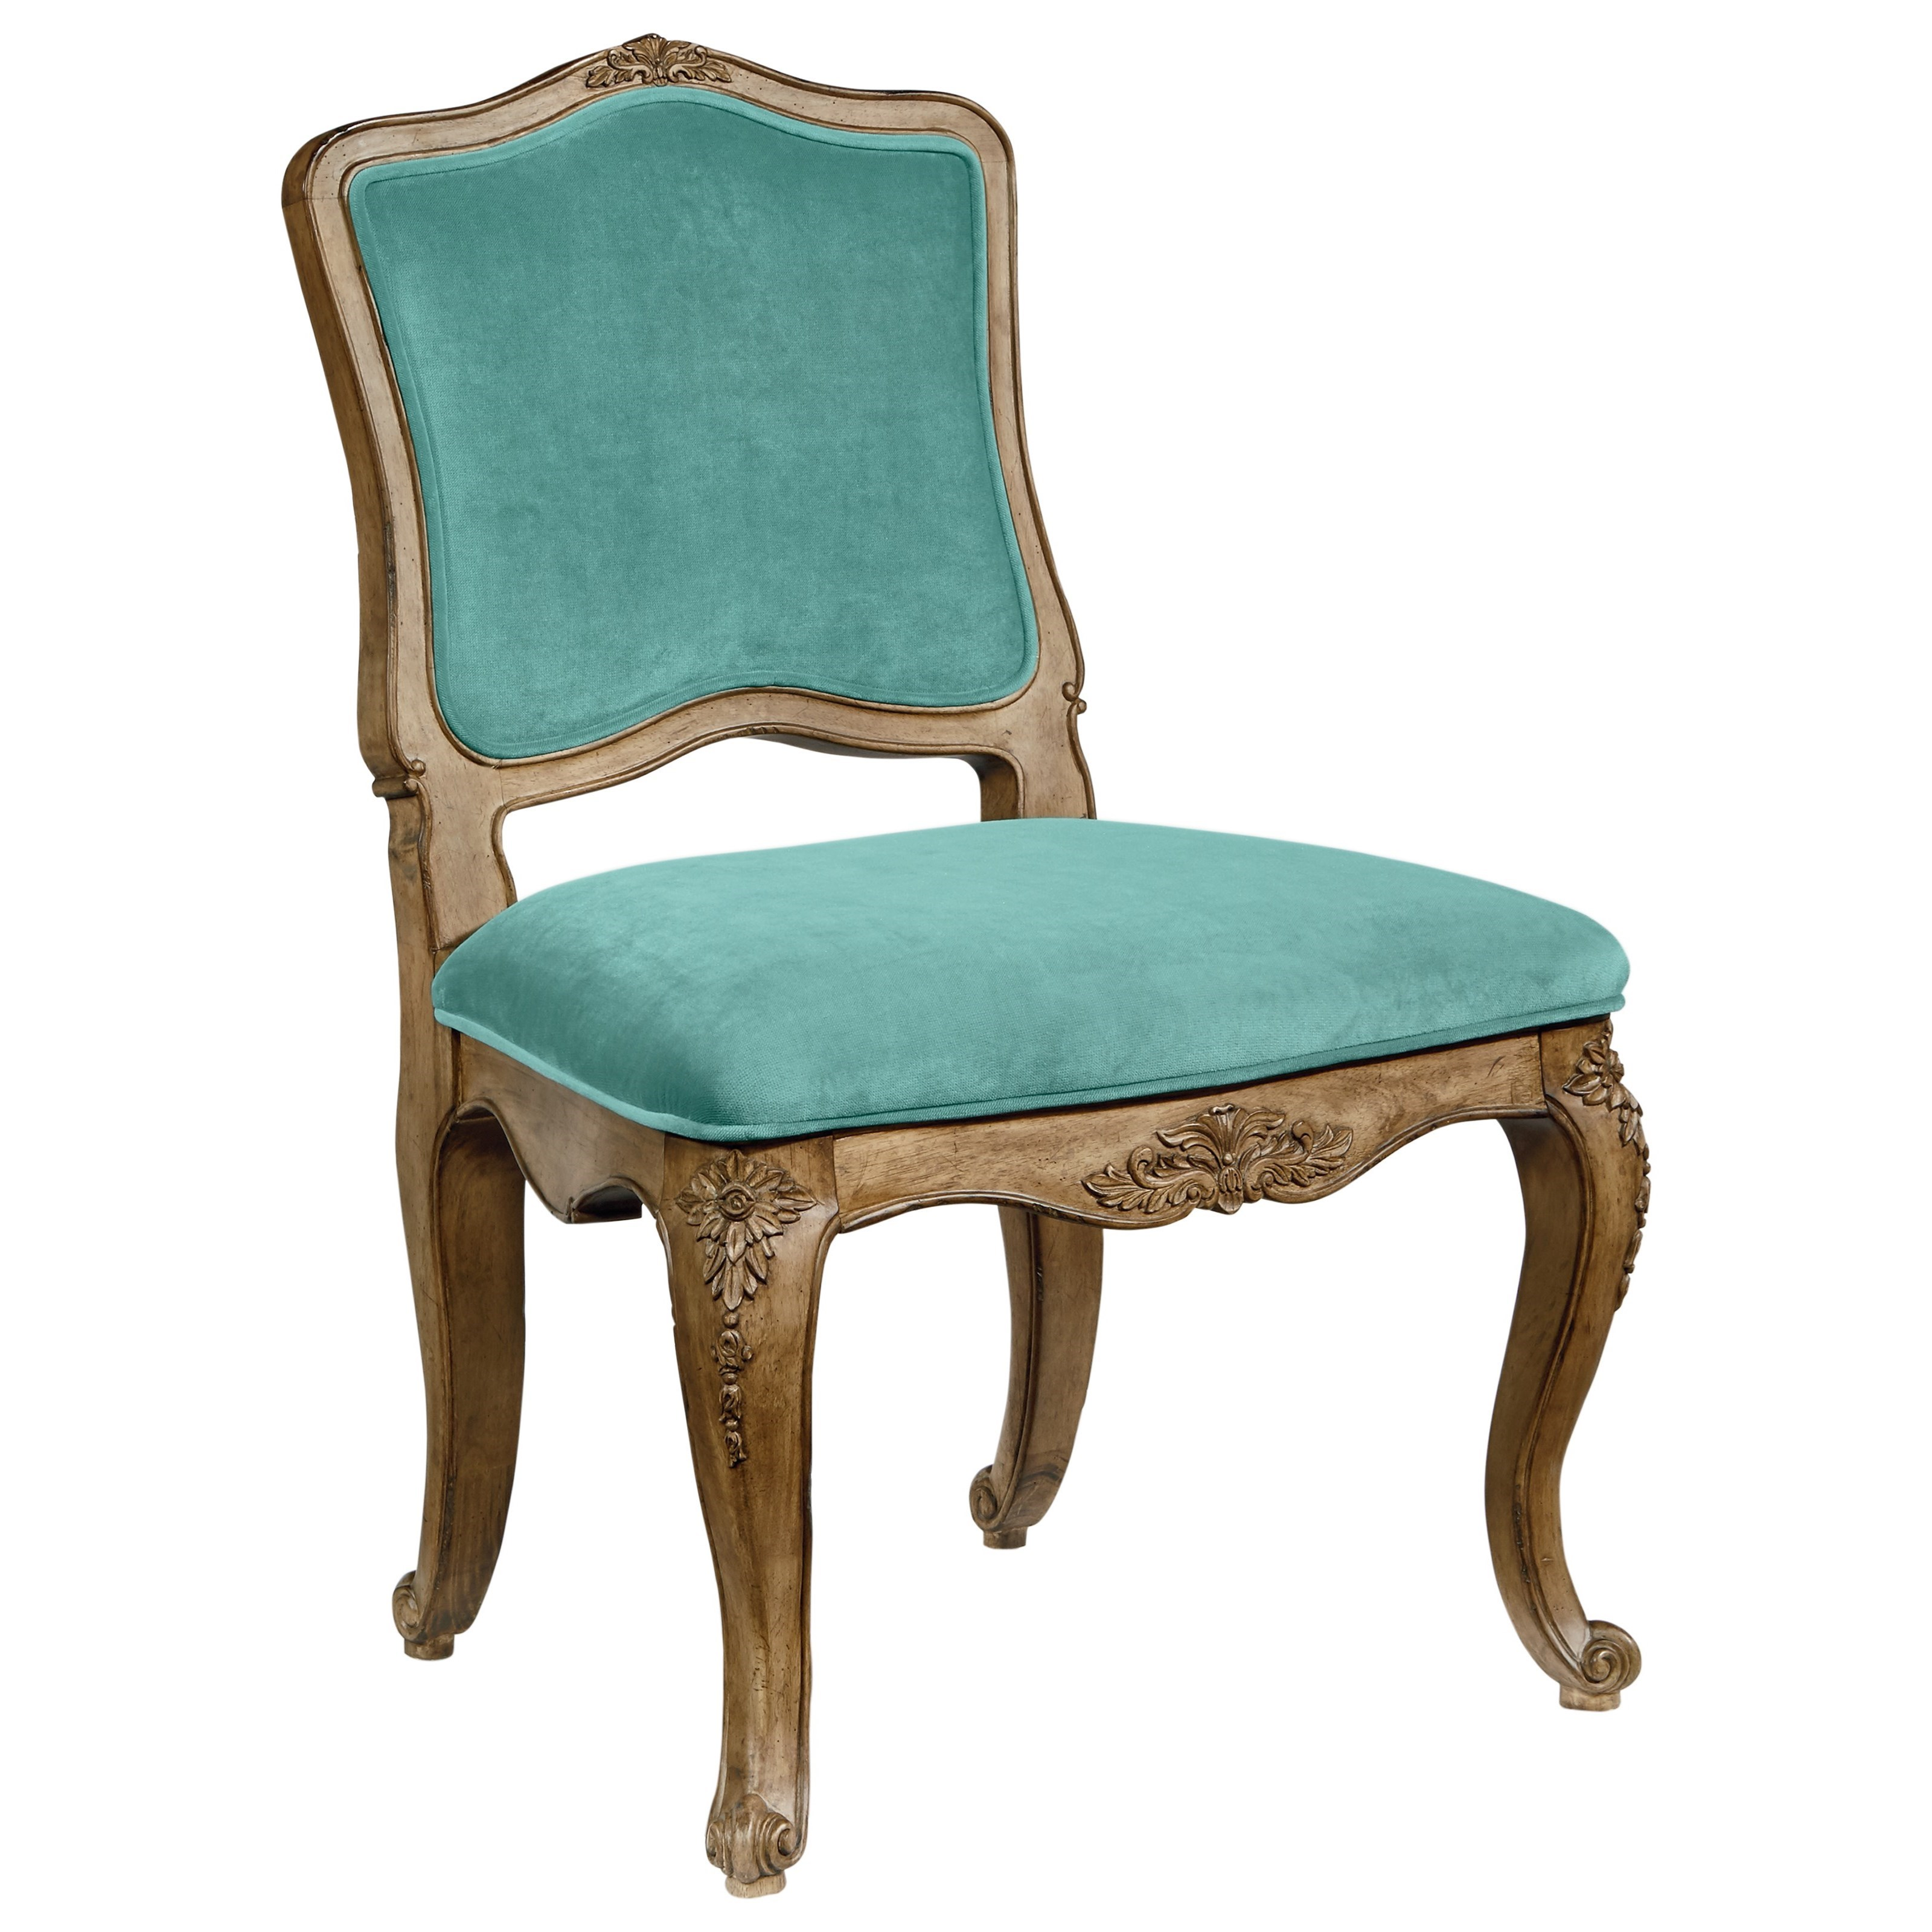 Magnolia home by joanna gaines accent chairs 80616010 for Accent furniture